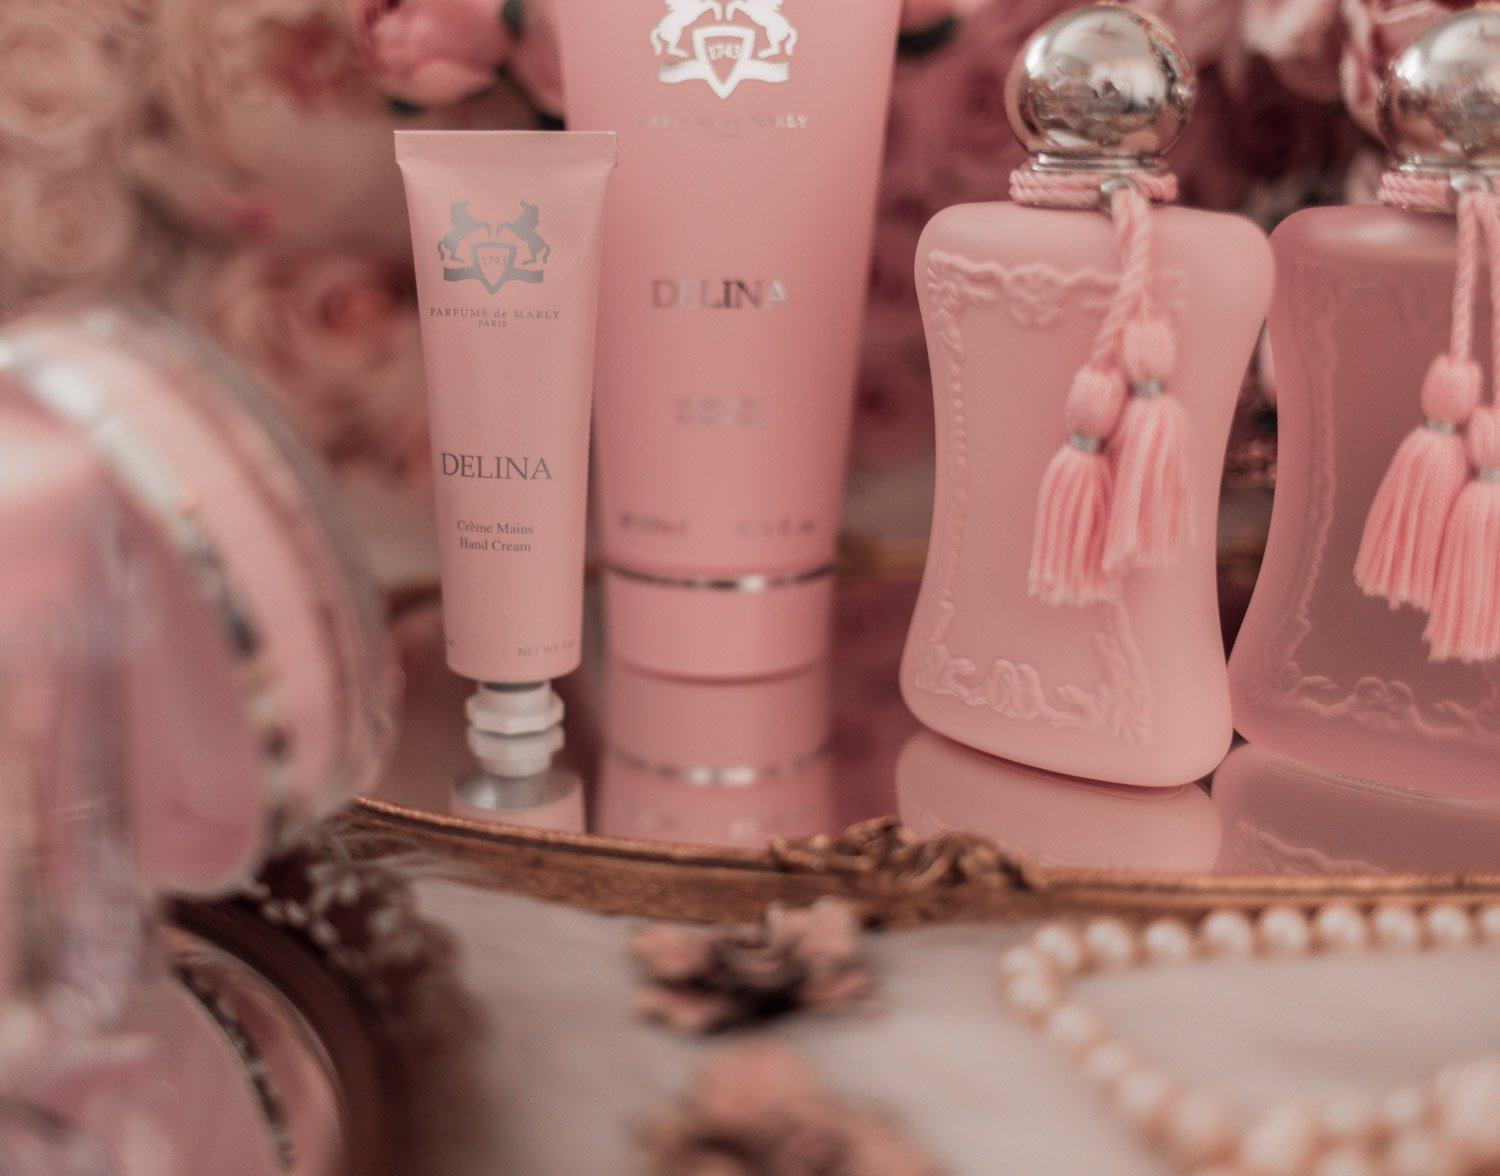 Feminine fashion blogger Elizabeth Hugen of Lizzie in Lace shares the entire Perfums de Marly Delina Collection including the Delina hand cream